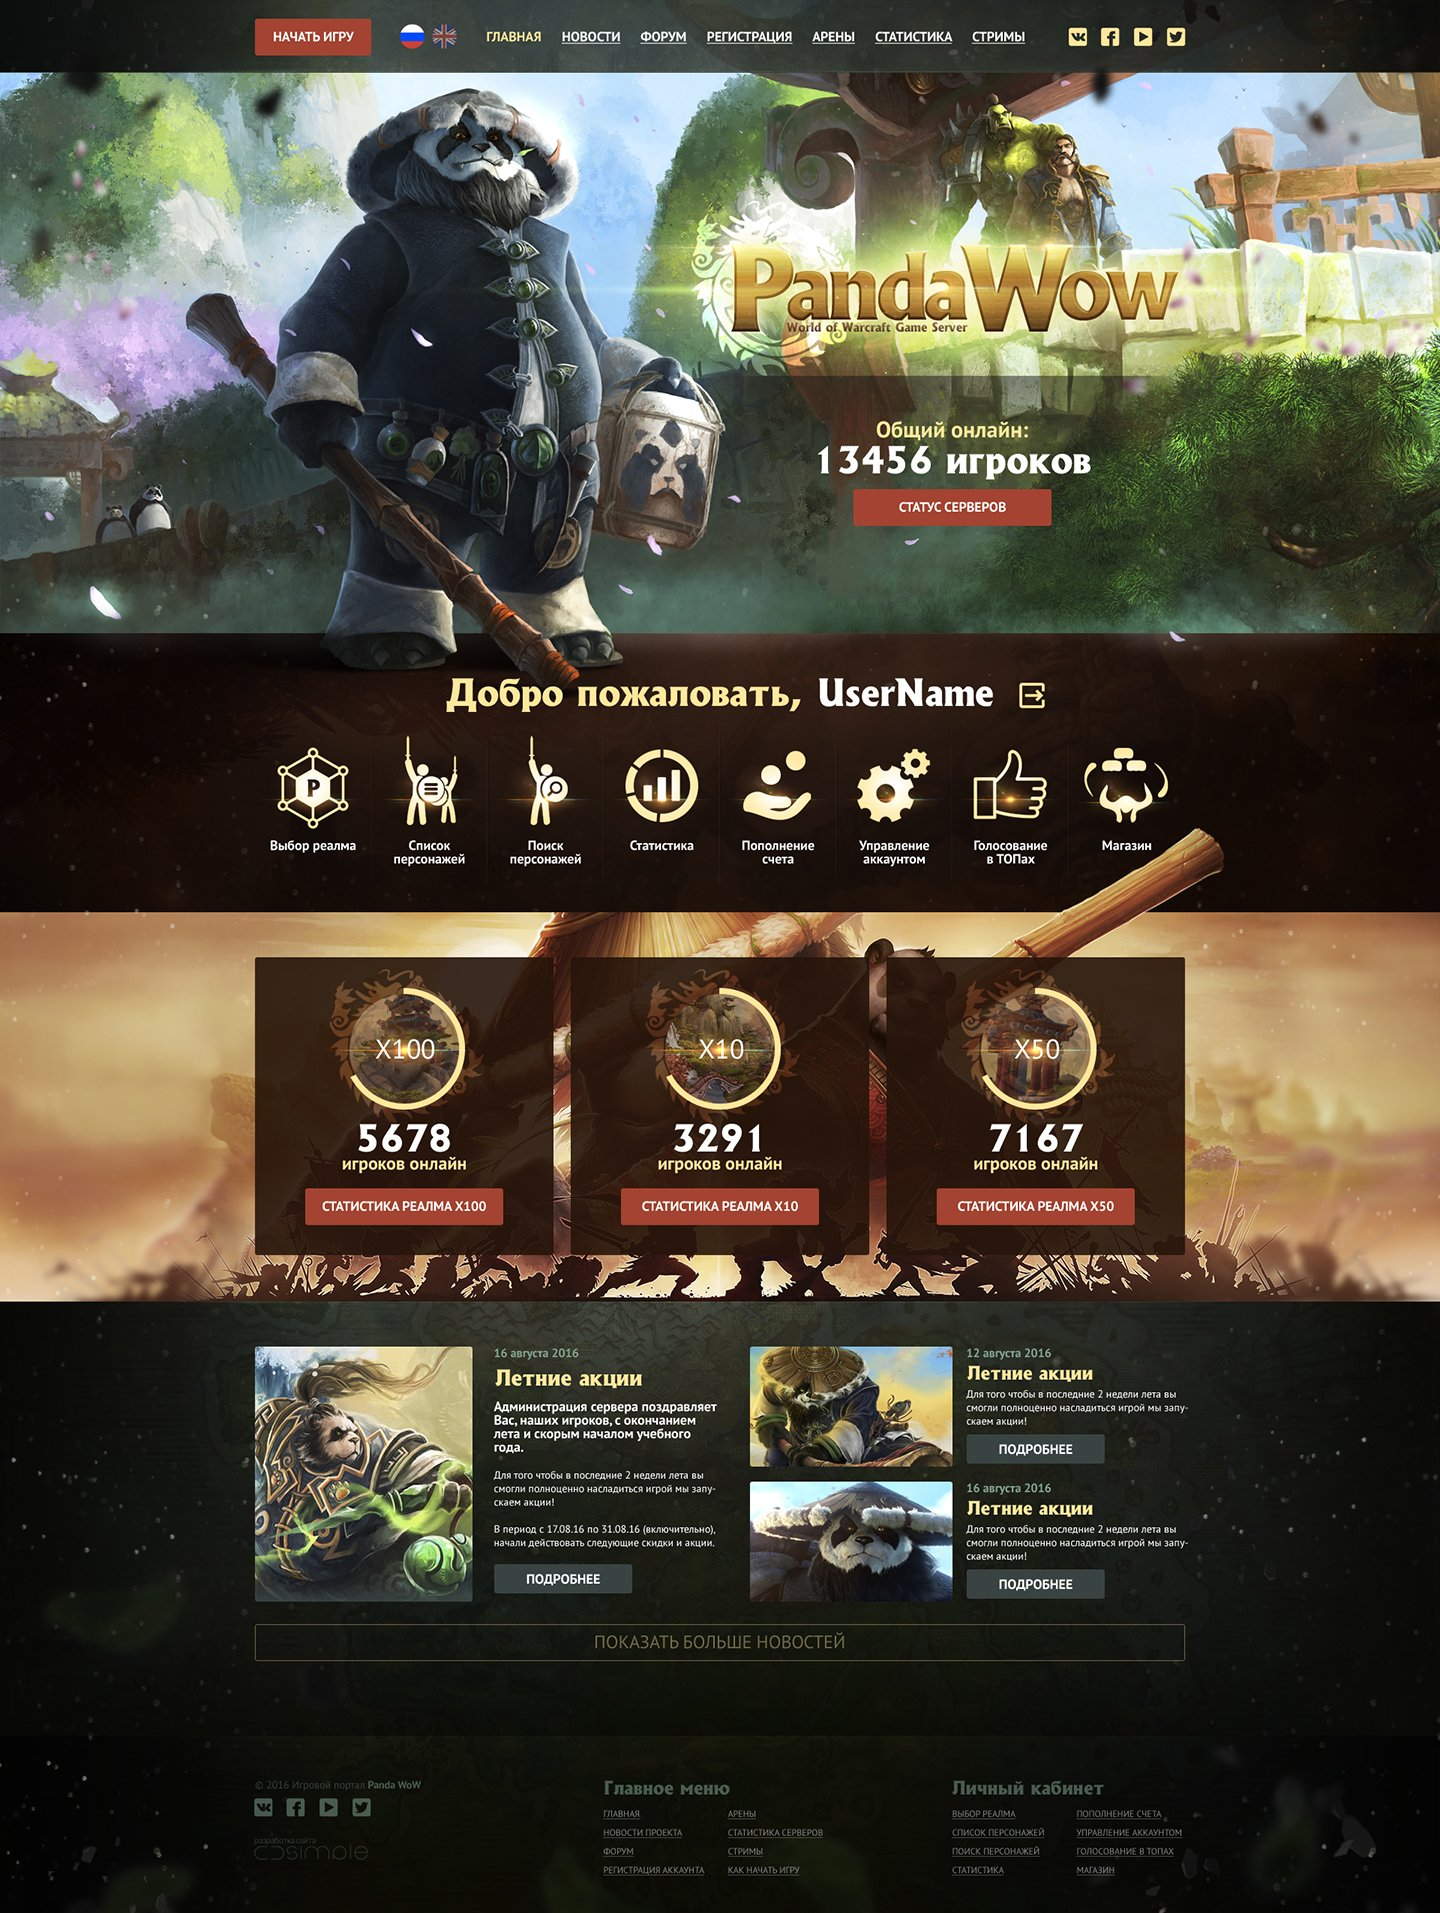 PandaWoW > Website design for private server World of Warcraft. Main page